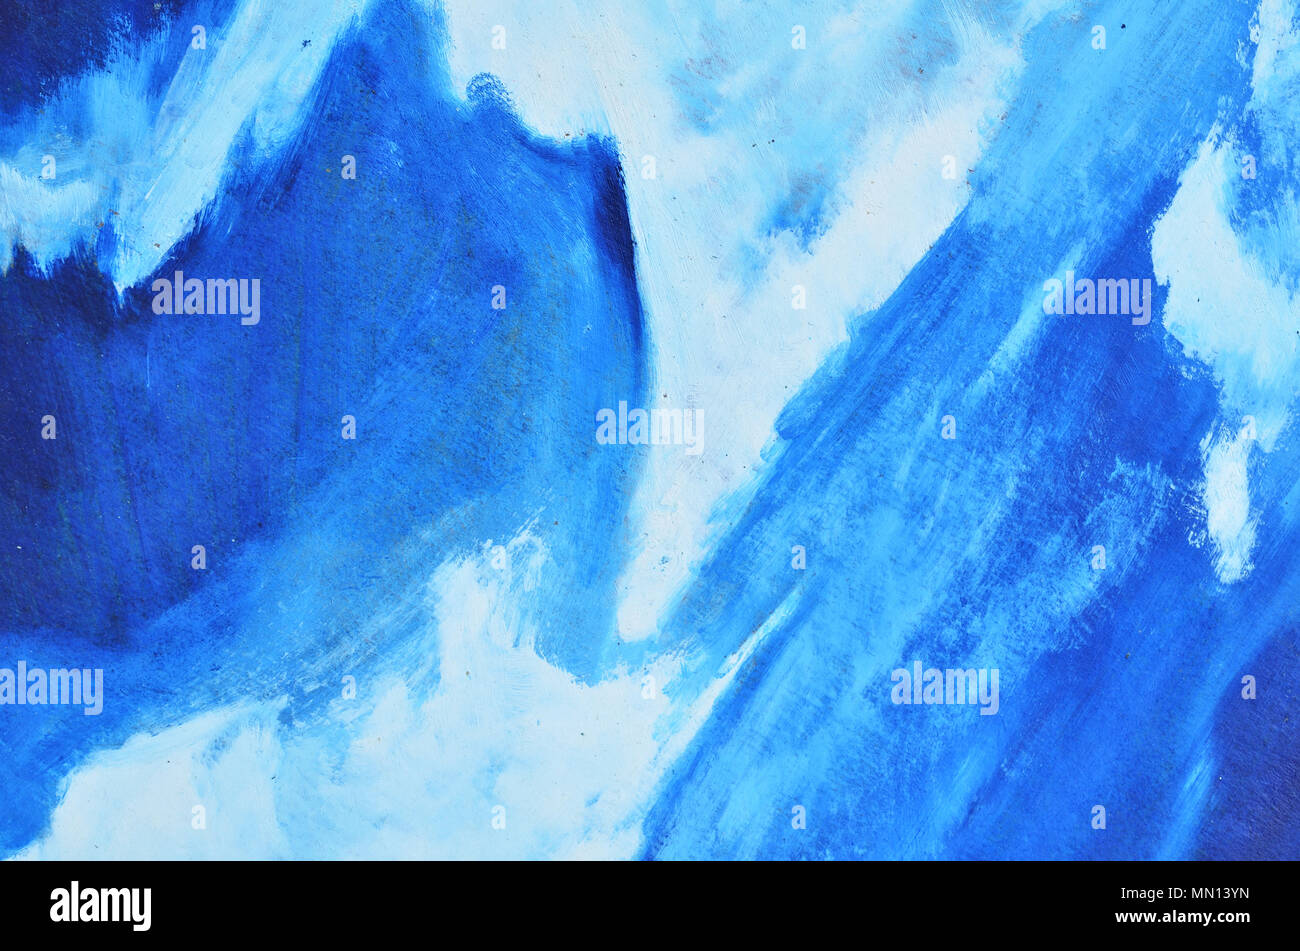 Light Blue And White Smears Of Watercolor Paint On A Thick Canvas Background Texture Wallpaper